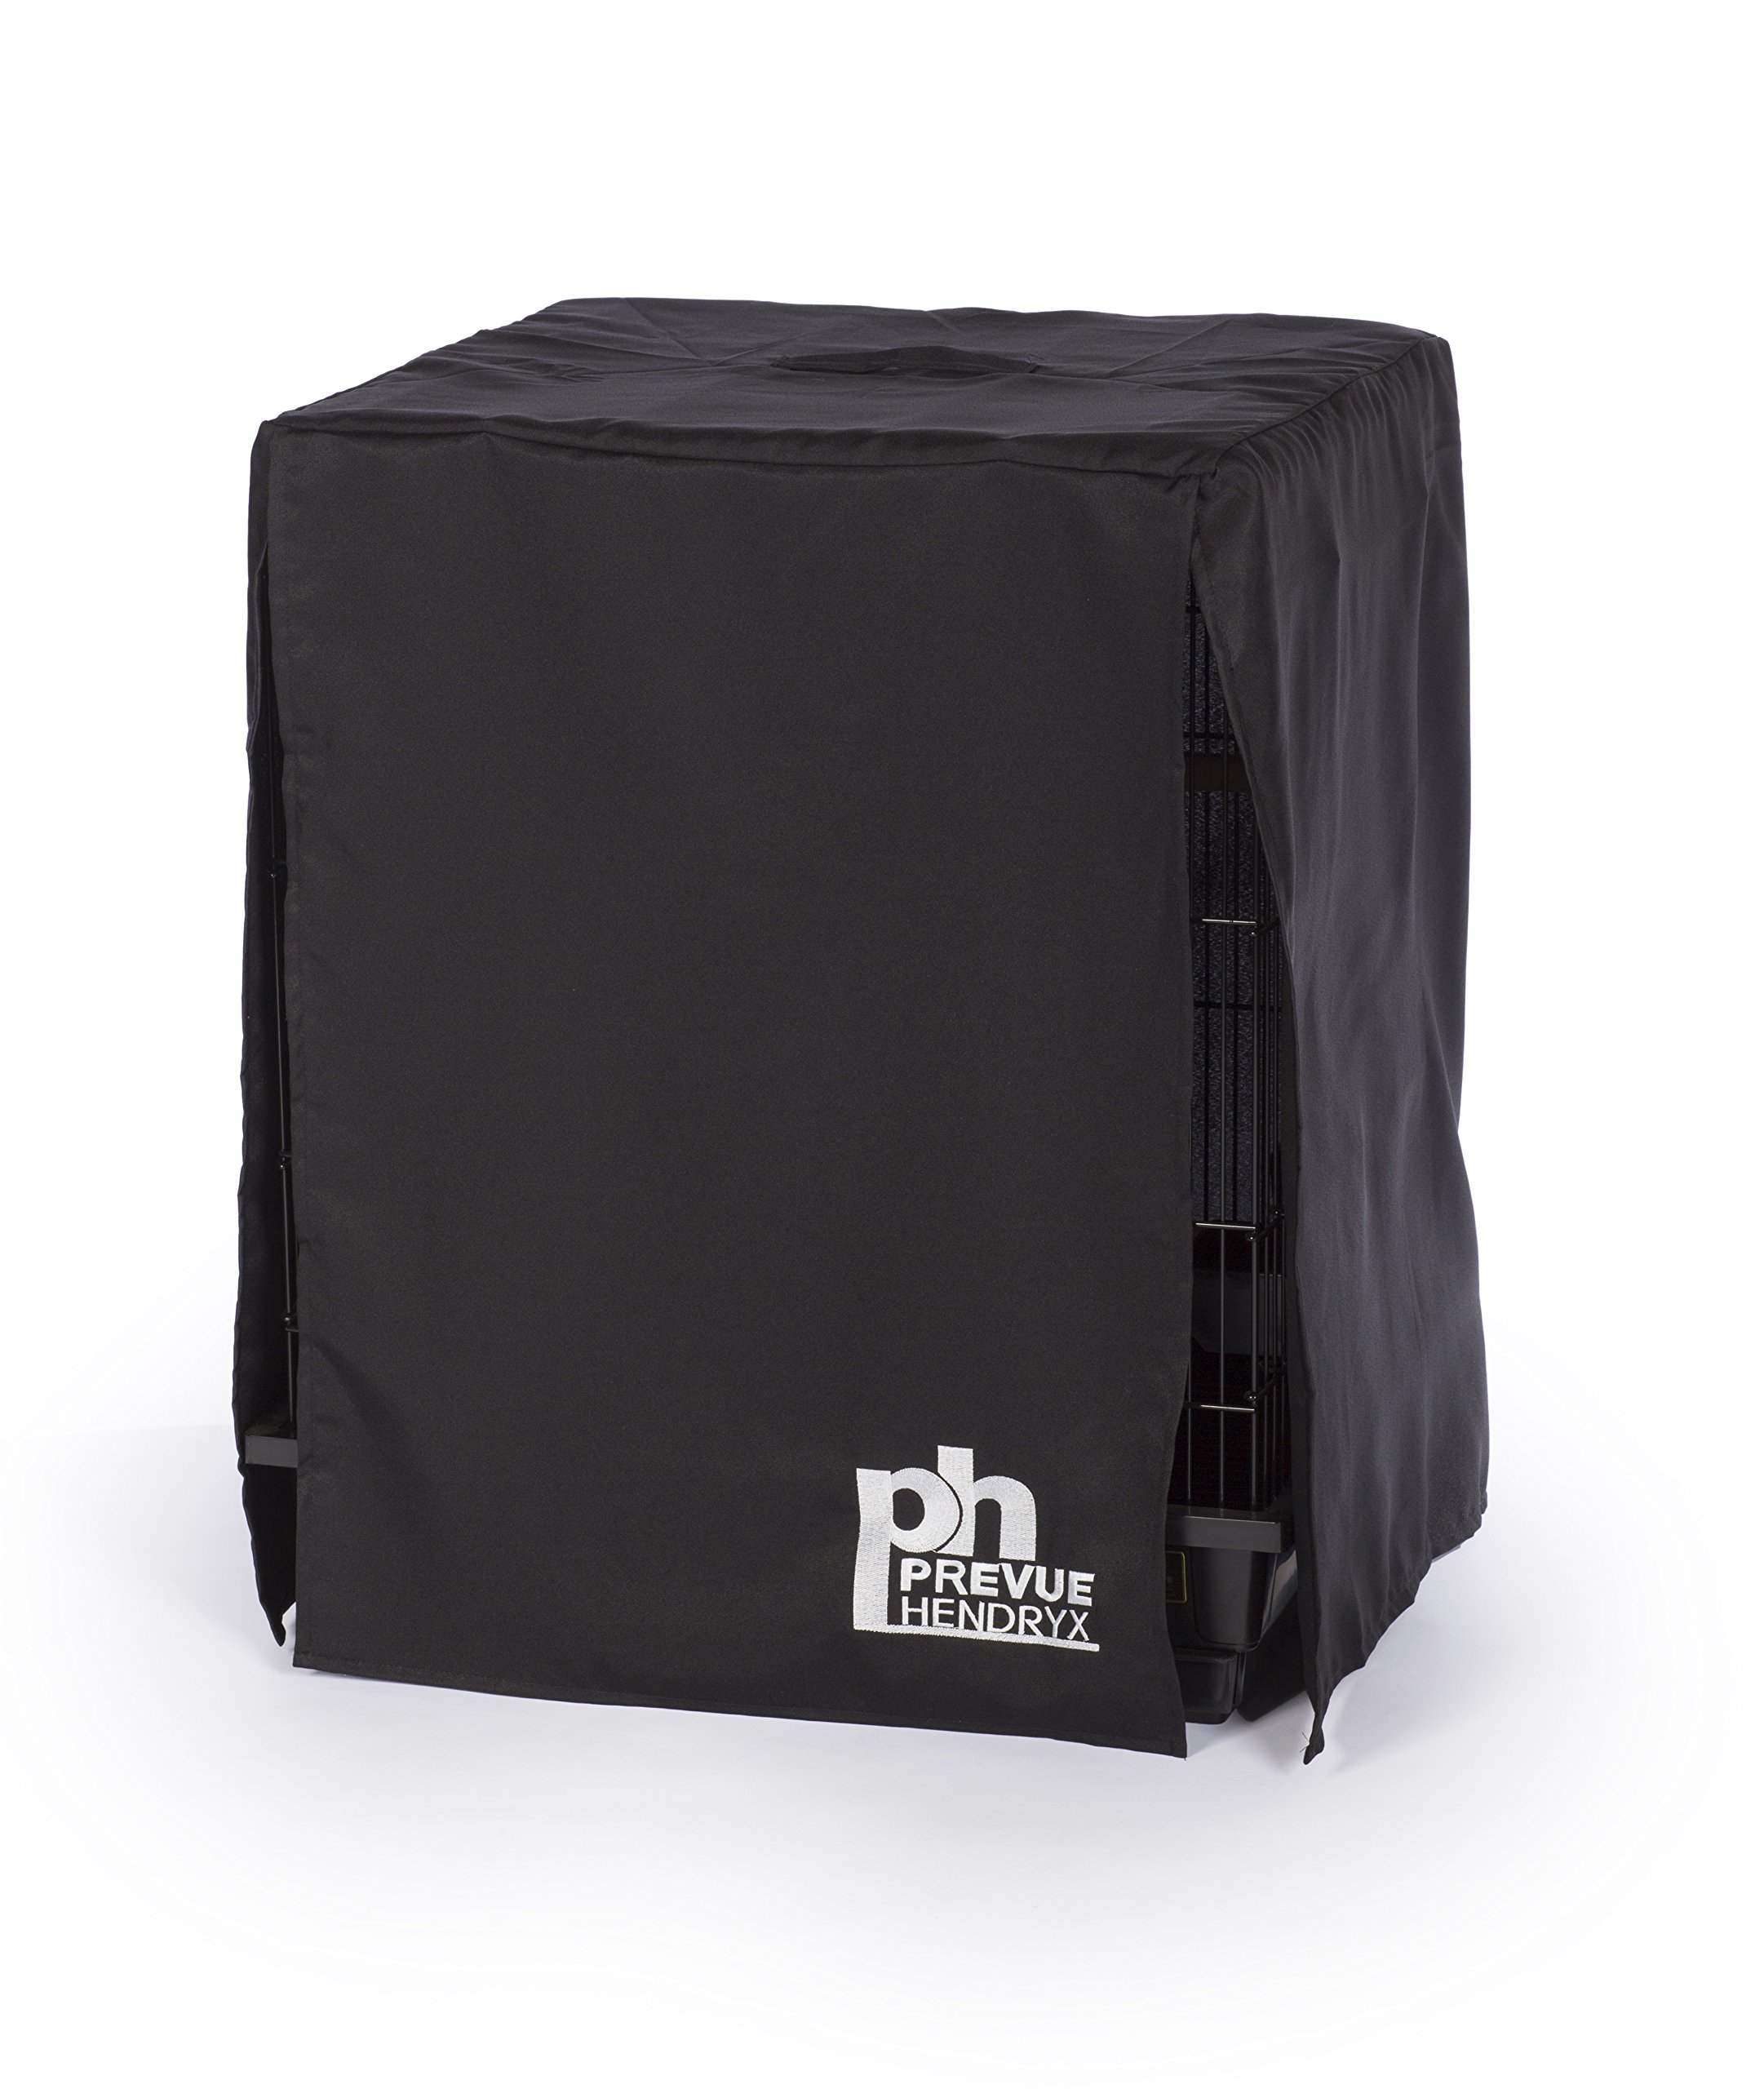 Prevue Hendryx Pet Products Universal Bird Cage Cover, Medium, Black by Prevue Hendryx